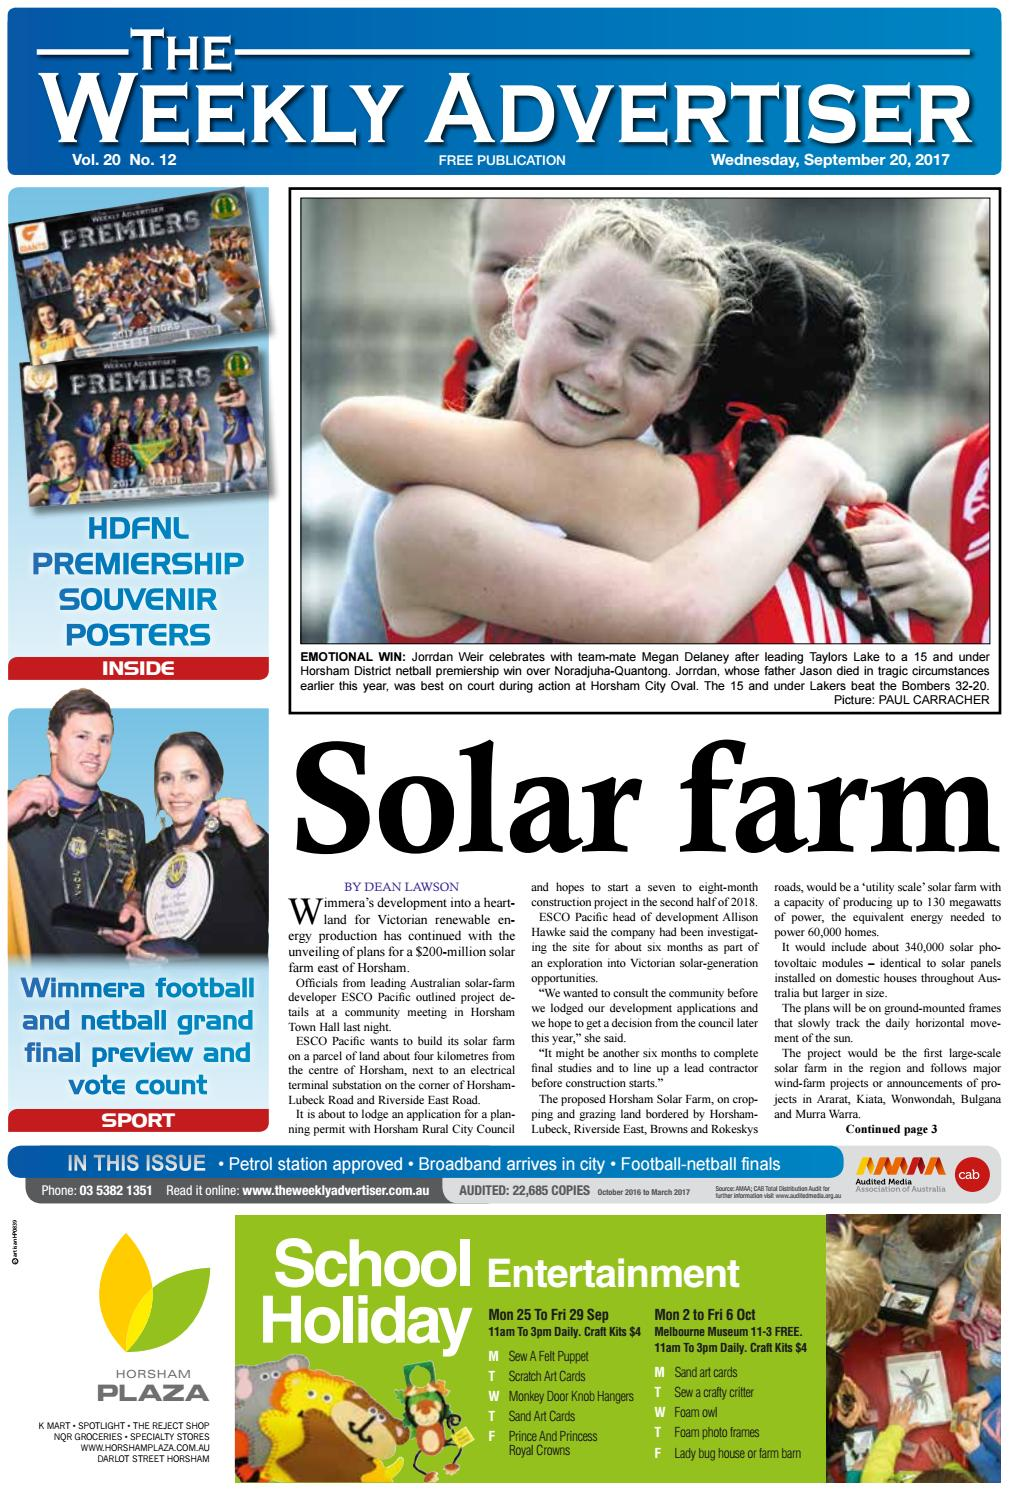 The Weekly Advertiser Wednesday September 20 2017 By Gibson Ripper Wiring Harness Issuu